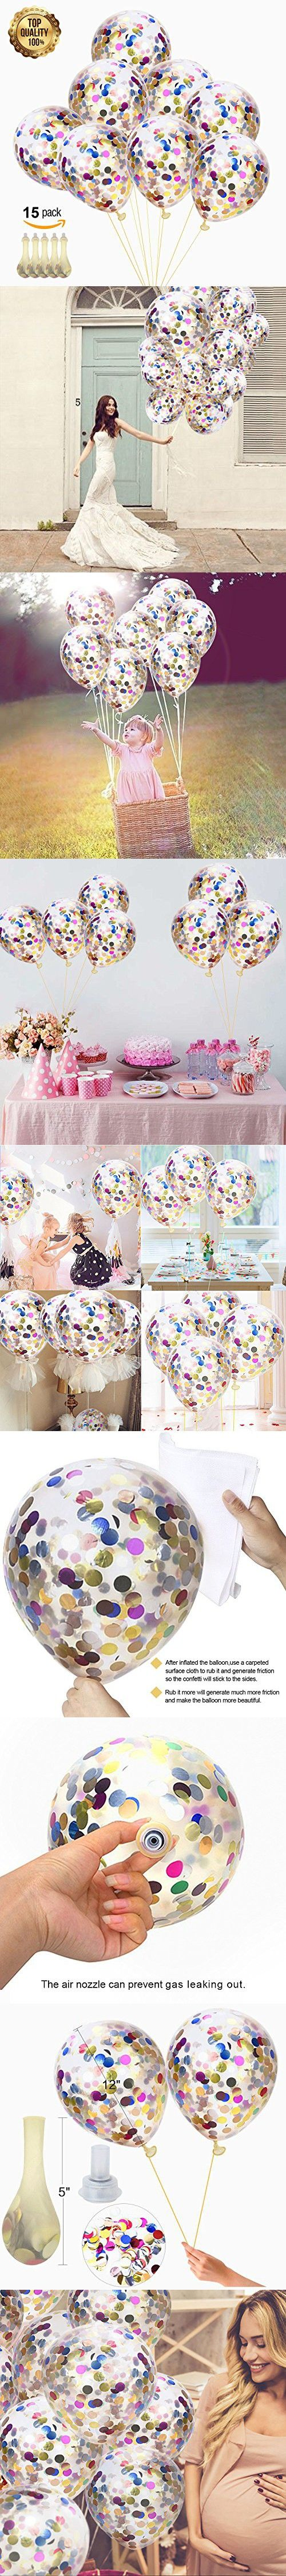 Confetti Balloons 12 Latex Round - Colorful Paper Balloons - Multicolor Confetti Dots Filled Clear Balloons for Birthday Party Christmas Wedding Decorations Holiday and Events Proposal (Pack of 15)